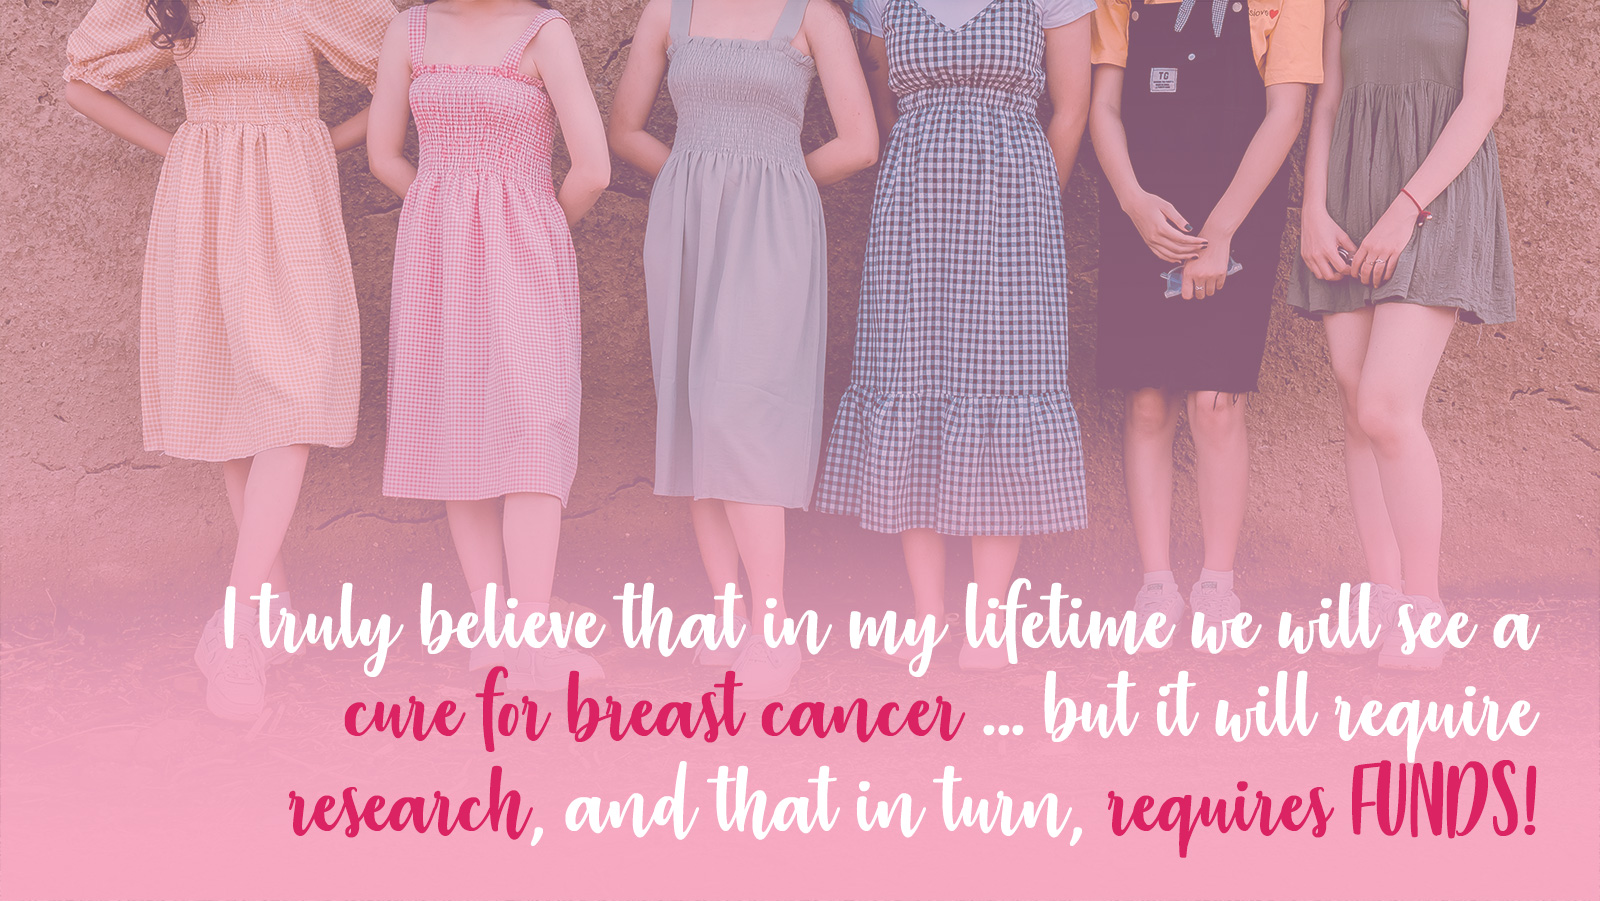 I truly believe that in my lifetime we will see a cure for breast cancer ... But it will require research, and that in turn, requires FUNDS!